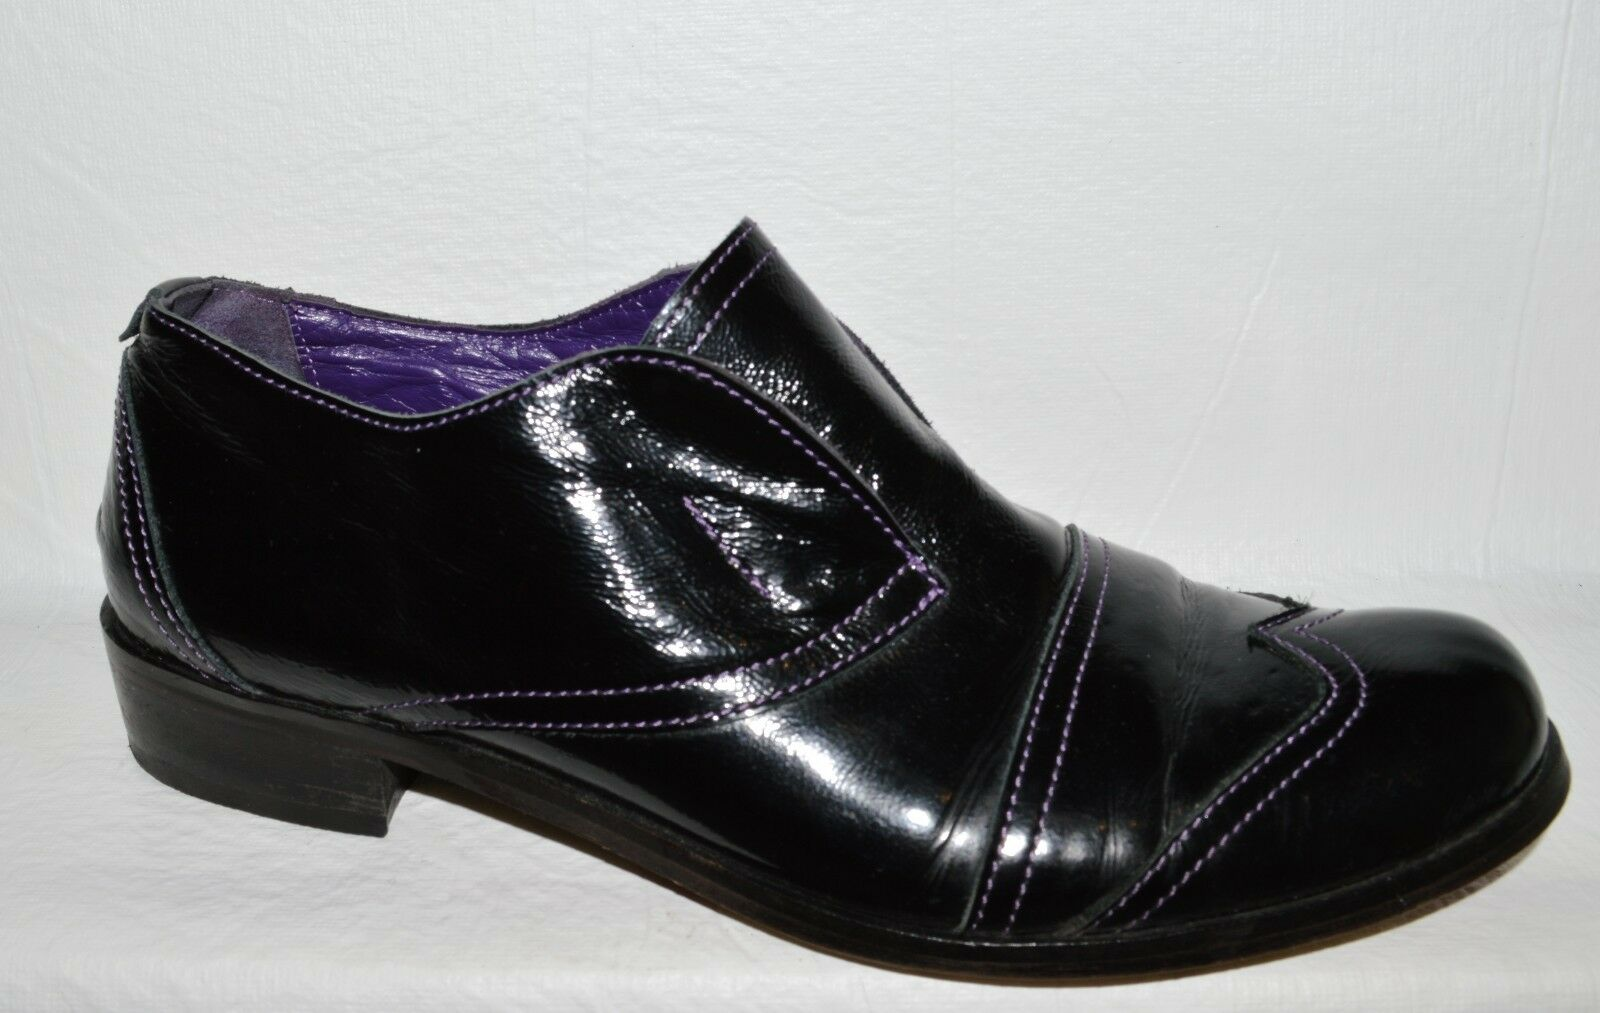 PIED A TERRE  8.5 M 38 BLACK PATENT LEATHER LACELESS OXFORDS LOAFERS SHOES ITALY